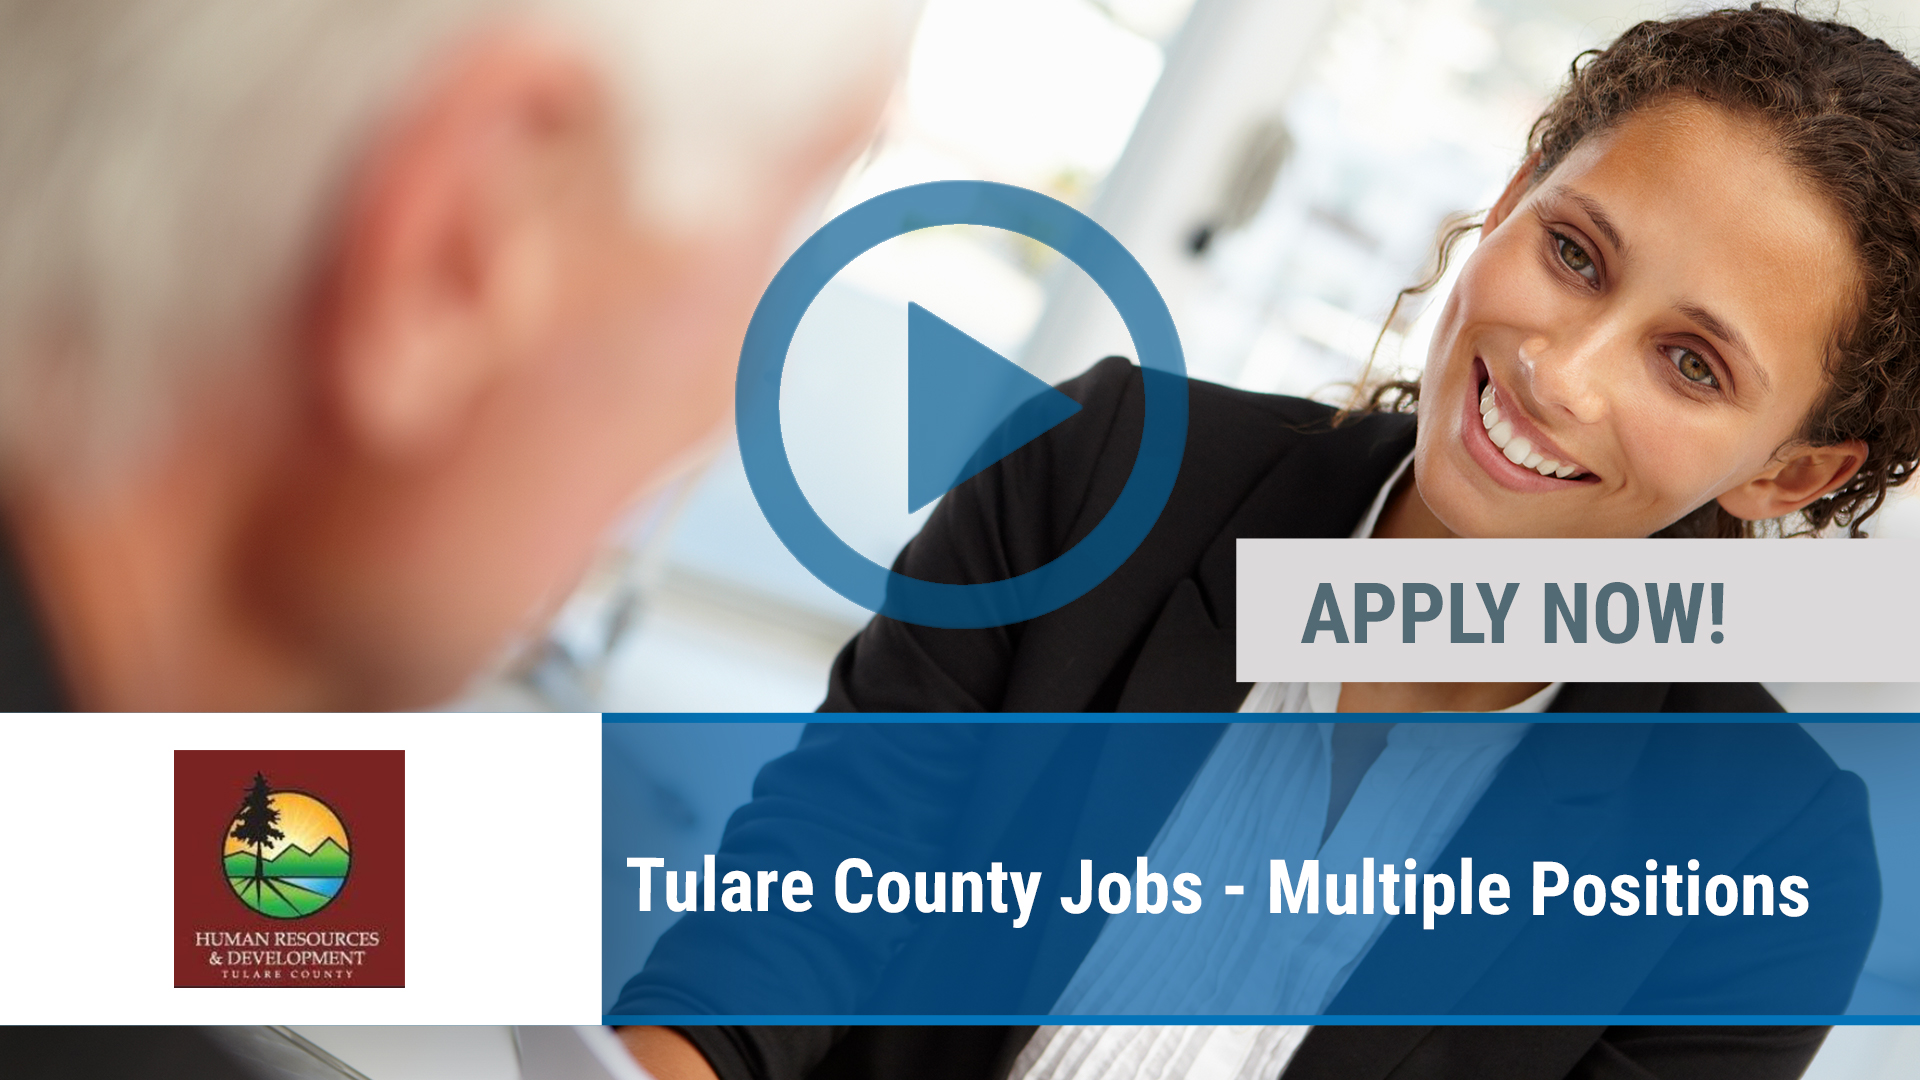 Watch our careers video for available job opening Tulare County Jobs - Multiple Positions in Visalia, CA